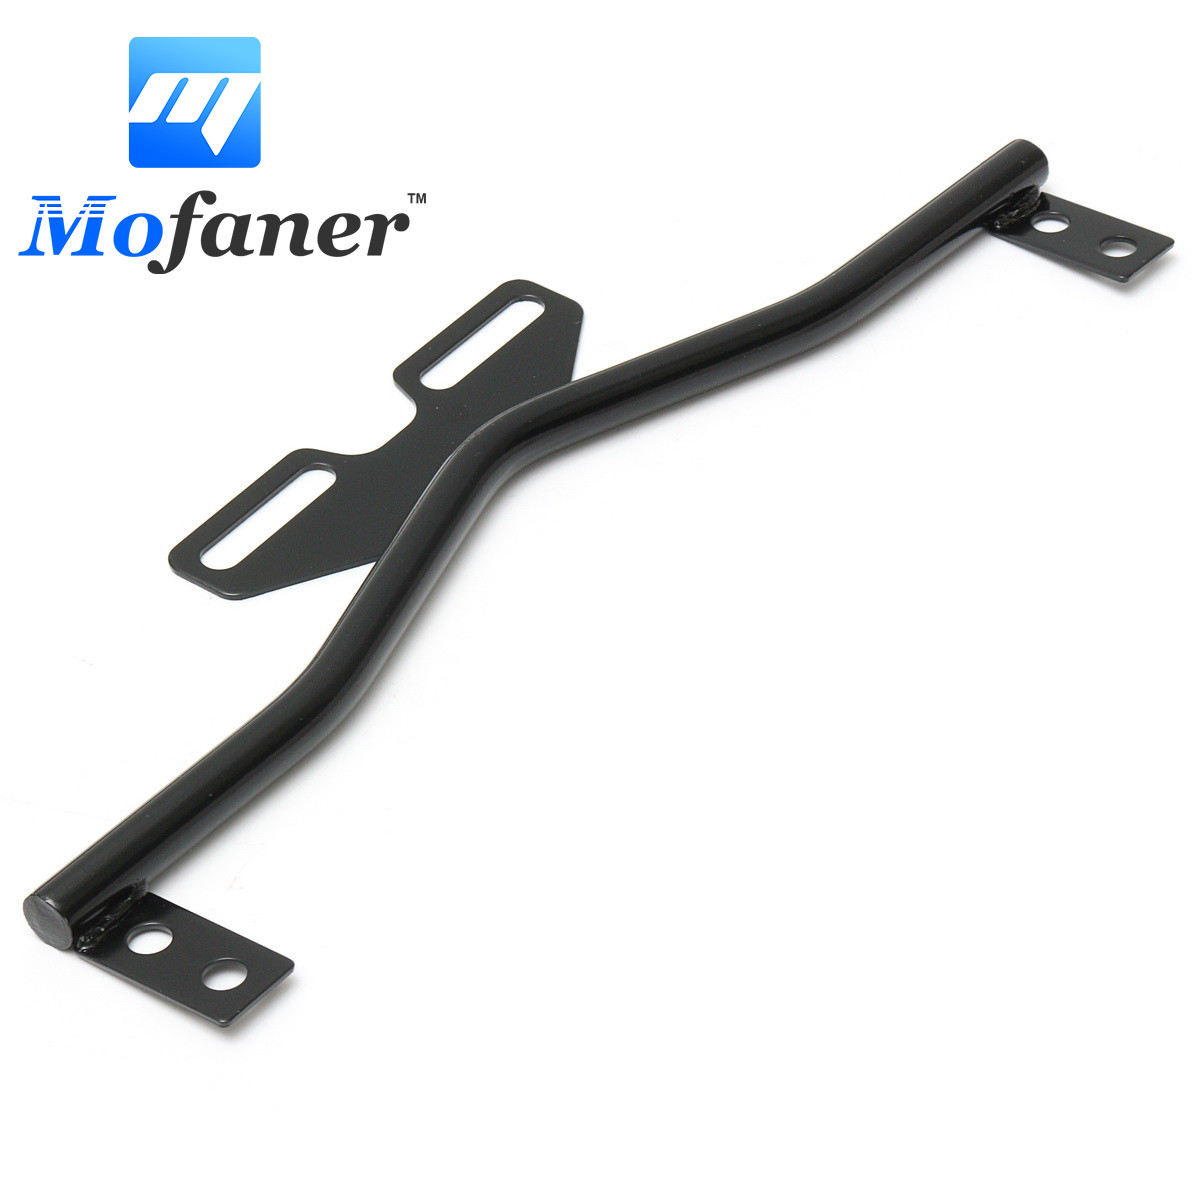 Mofaner Black Motorcycle Headlight Mounting Bracket For Spot Fog Turn Signal Light